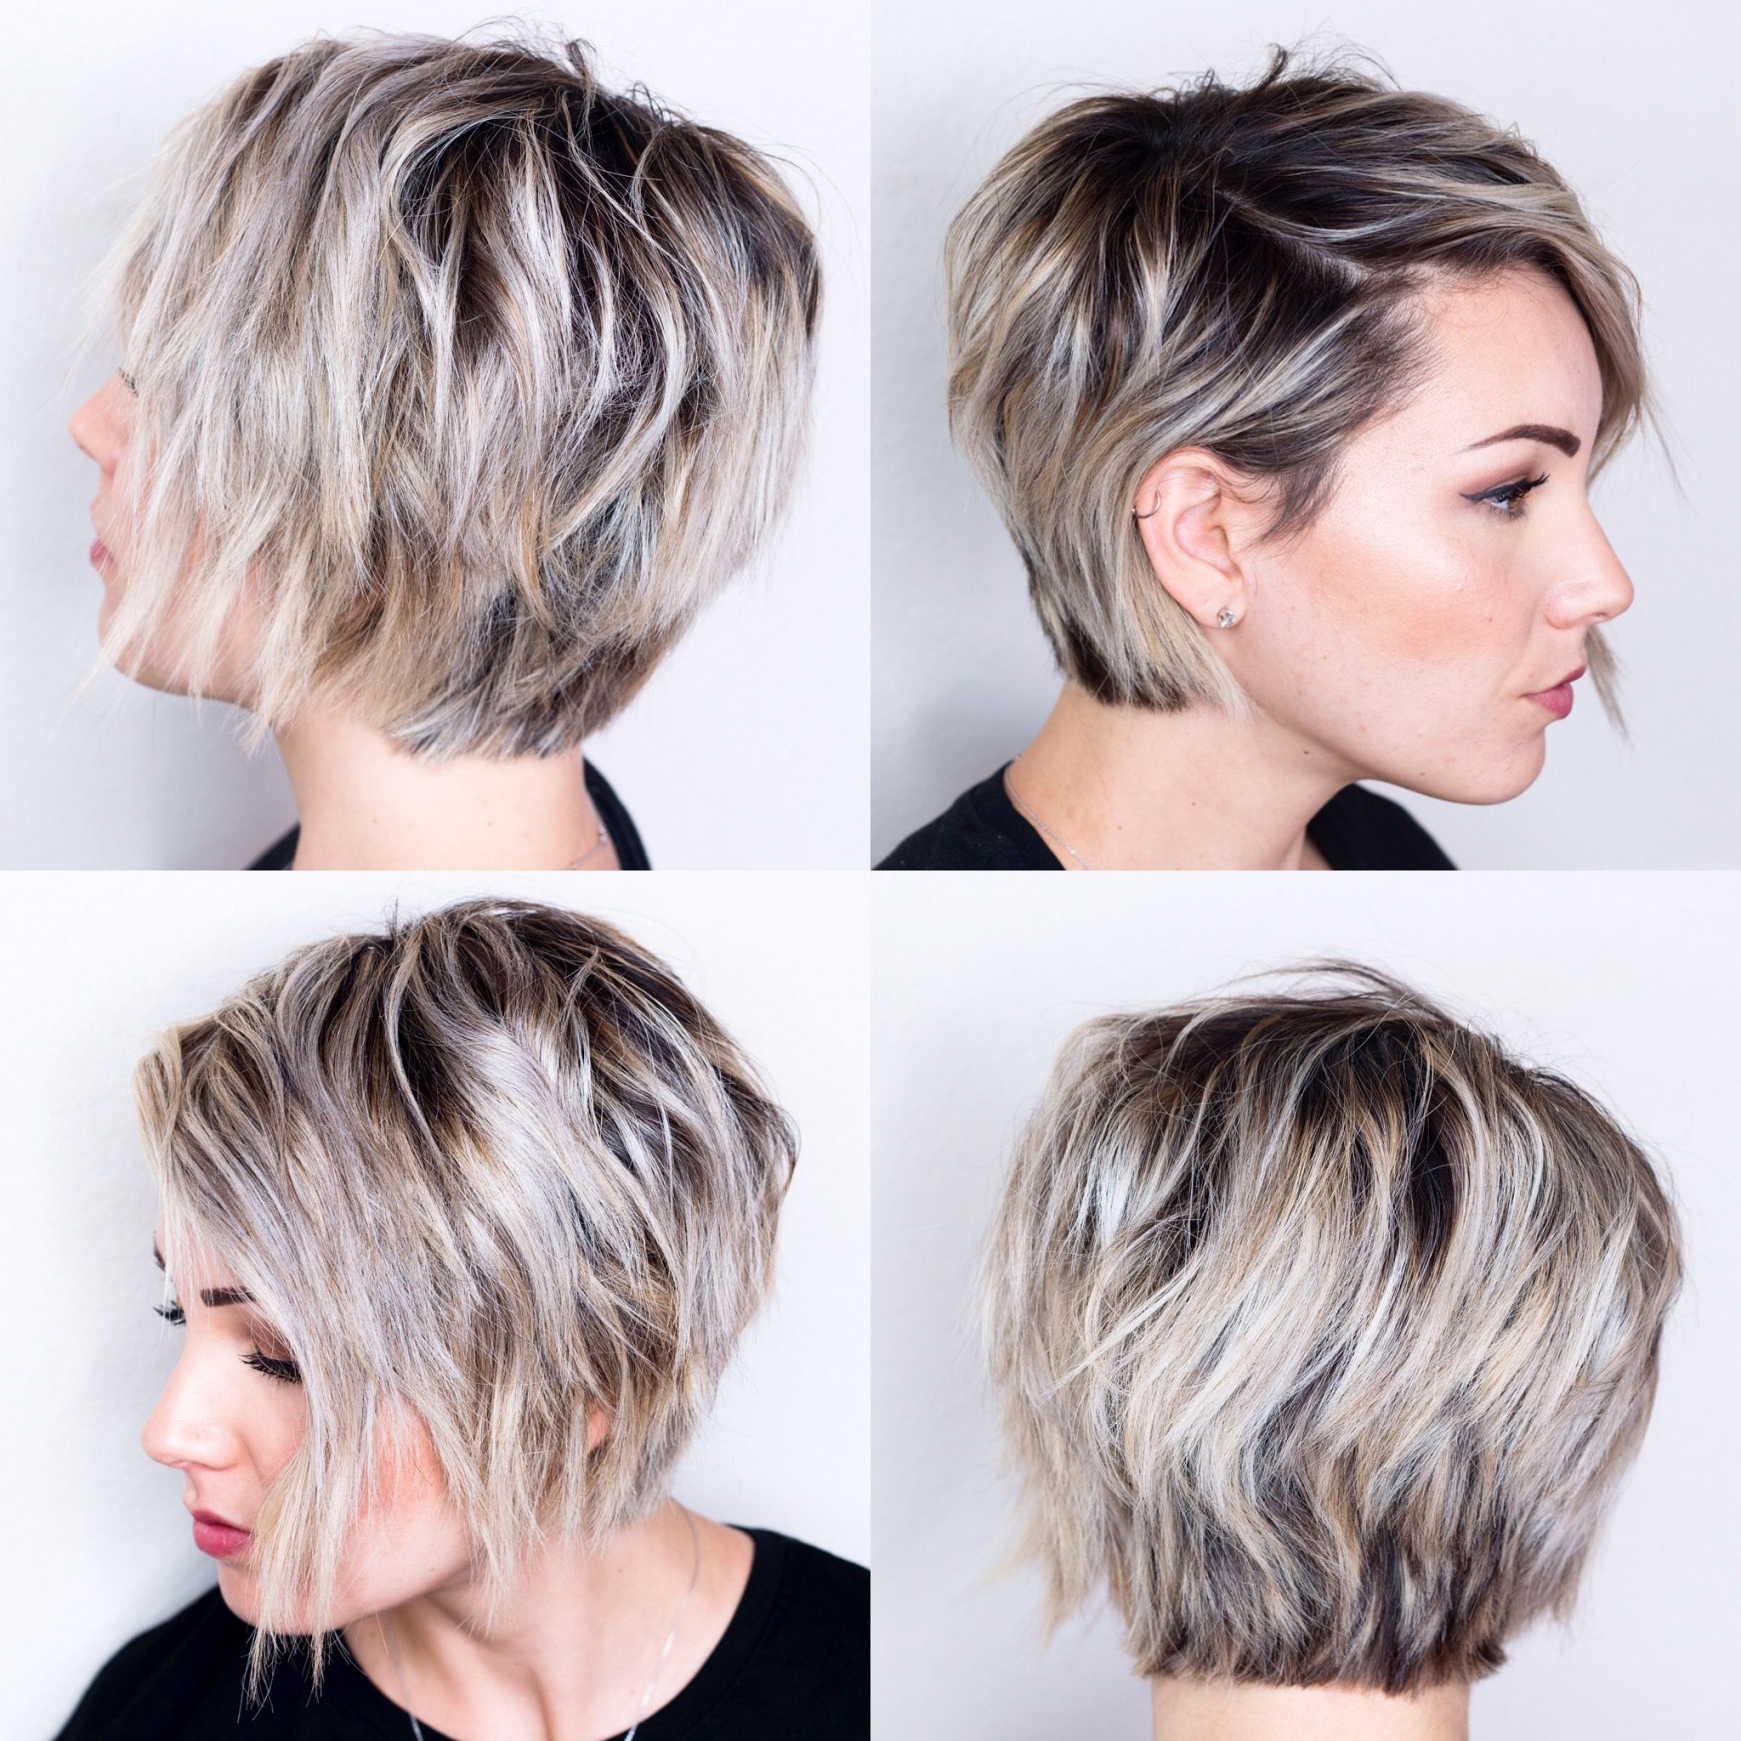 360 View Of Short Hair | H A I R In 2018 | Pinterest | Short Hair Pertaining To Short Blonde Styles (View 25 of 25)